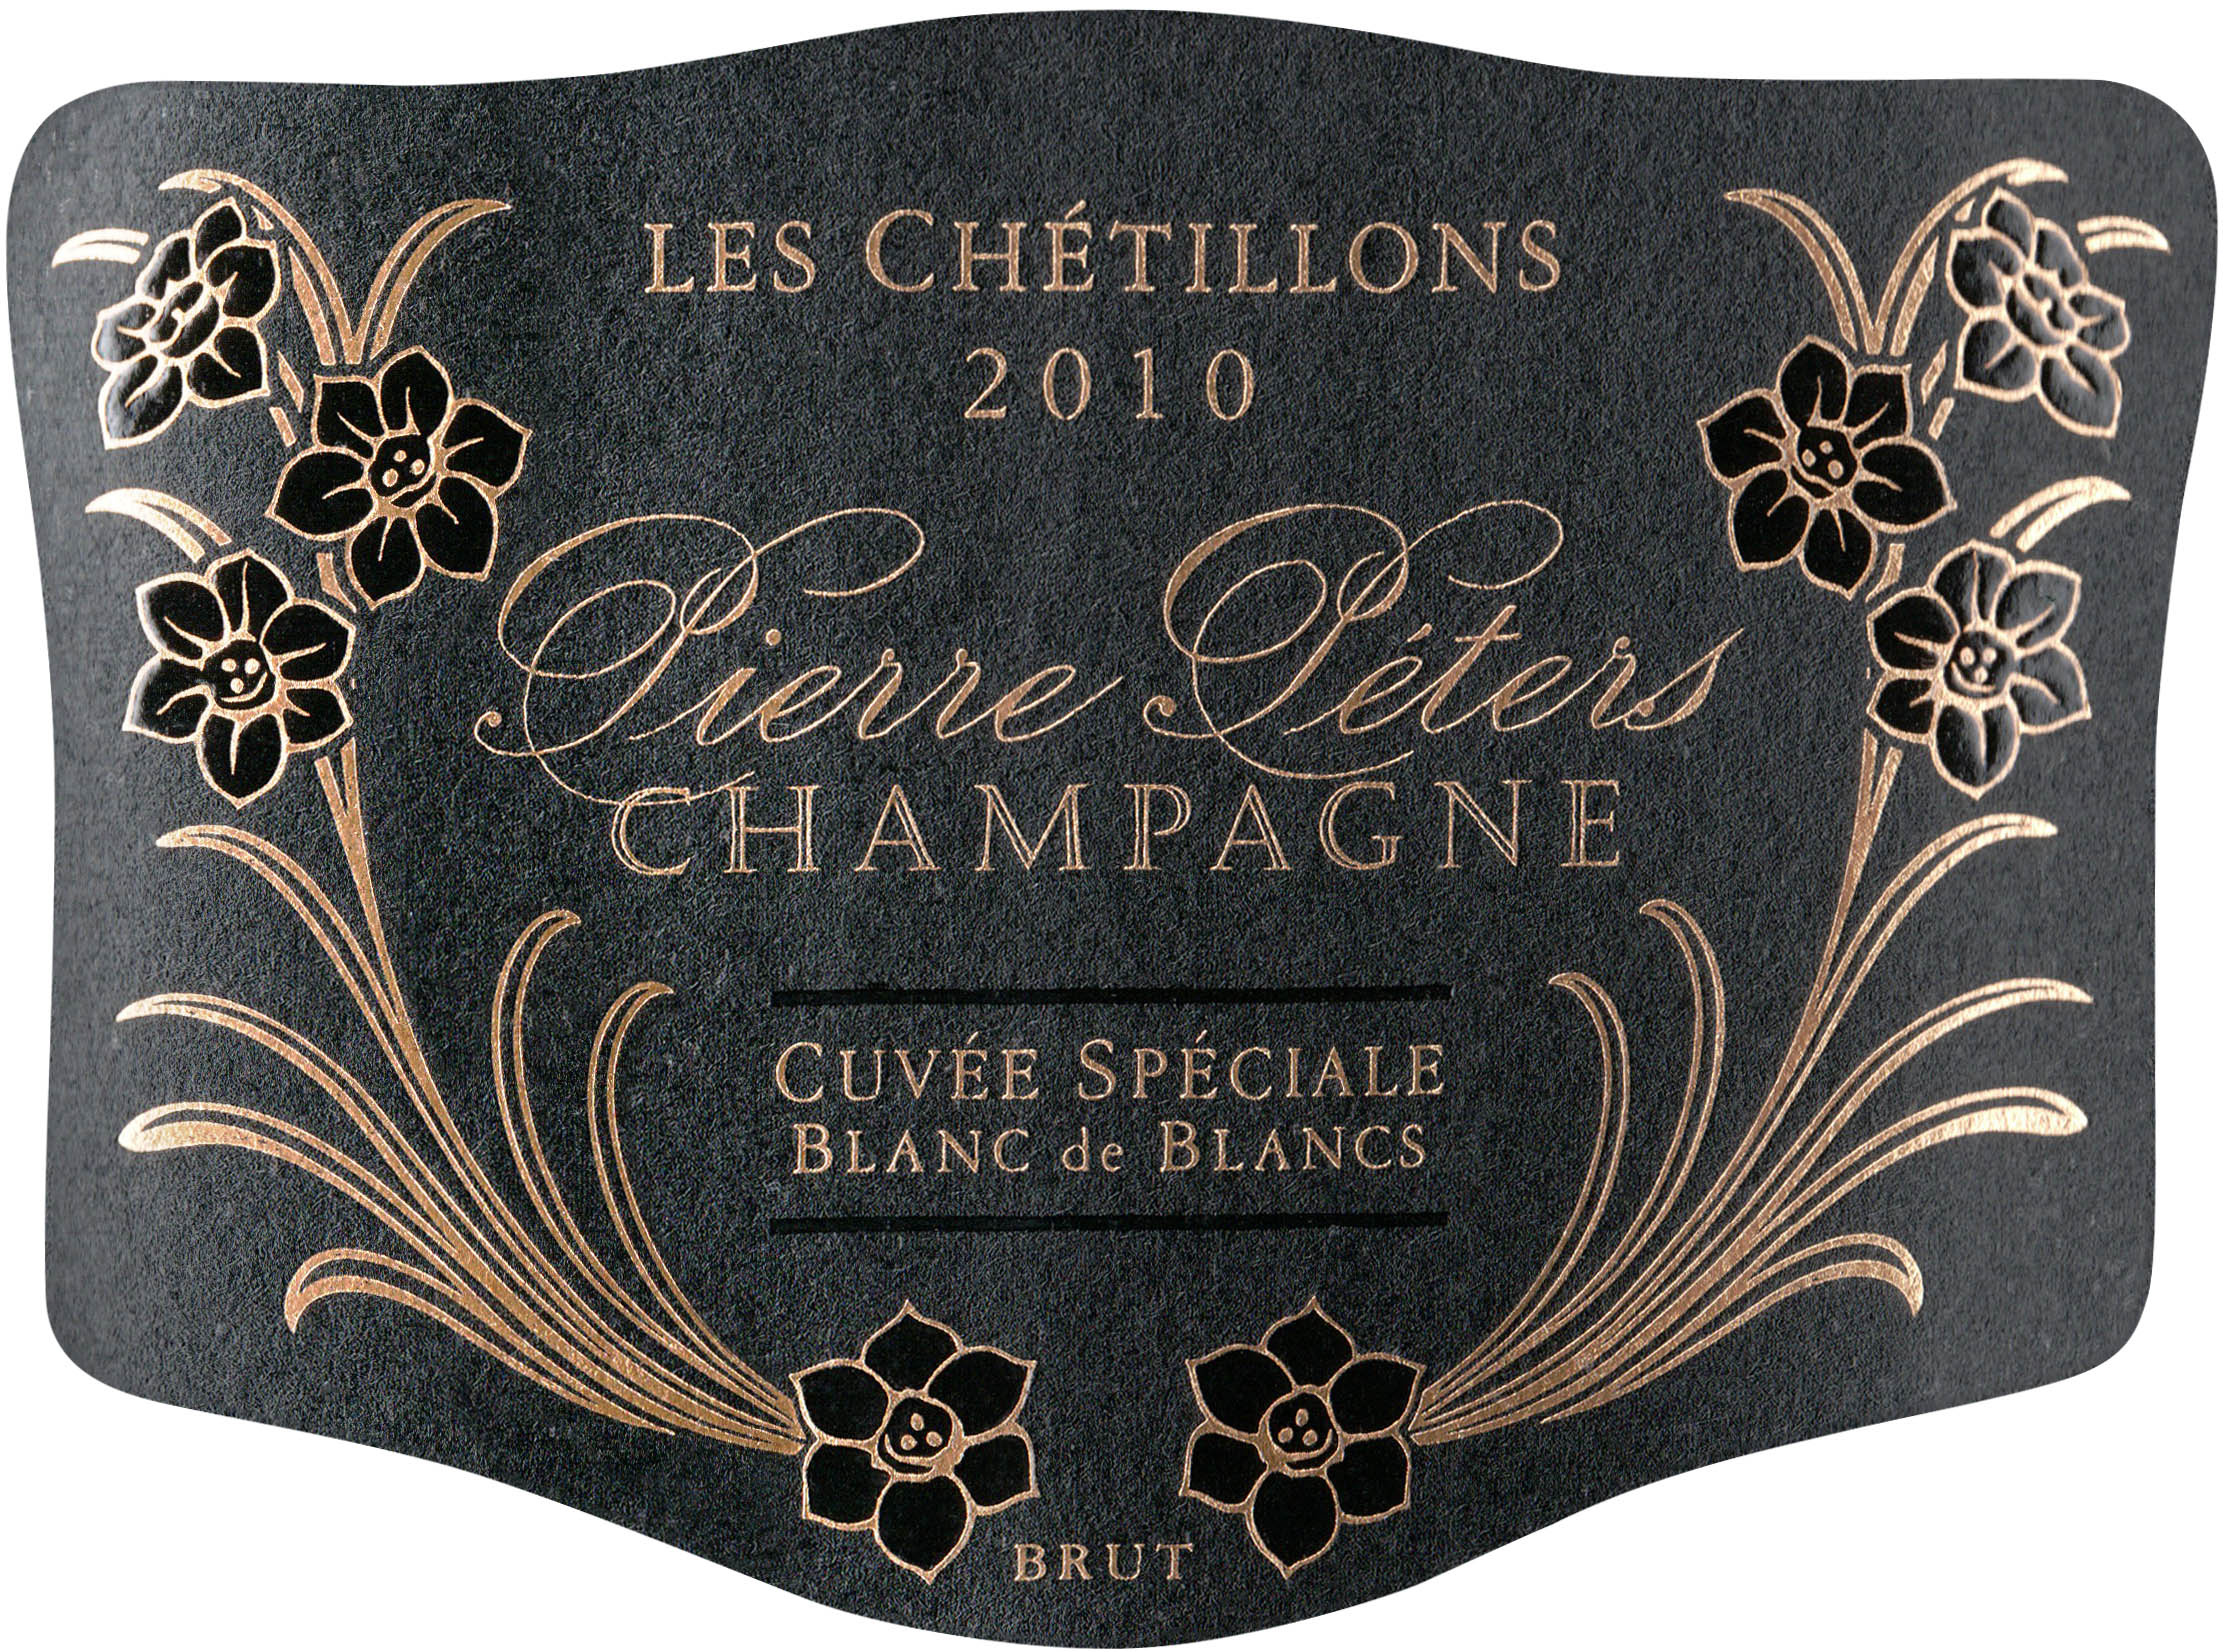 champagne-cuvee-speciale-les-chetillons-pierre-peters-4.jpg